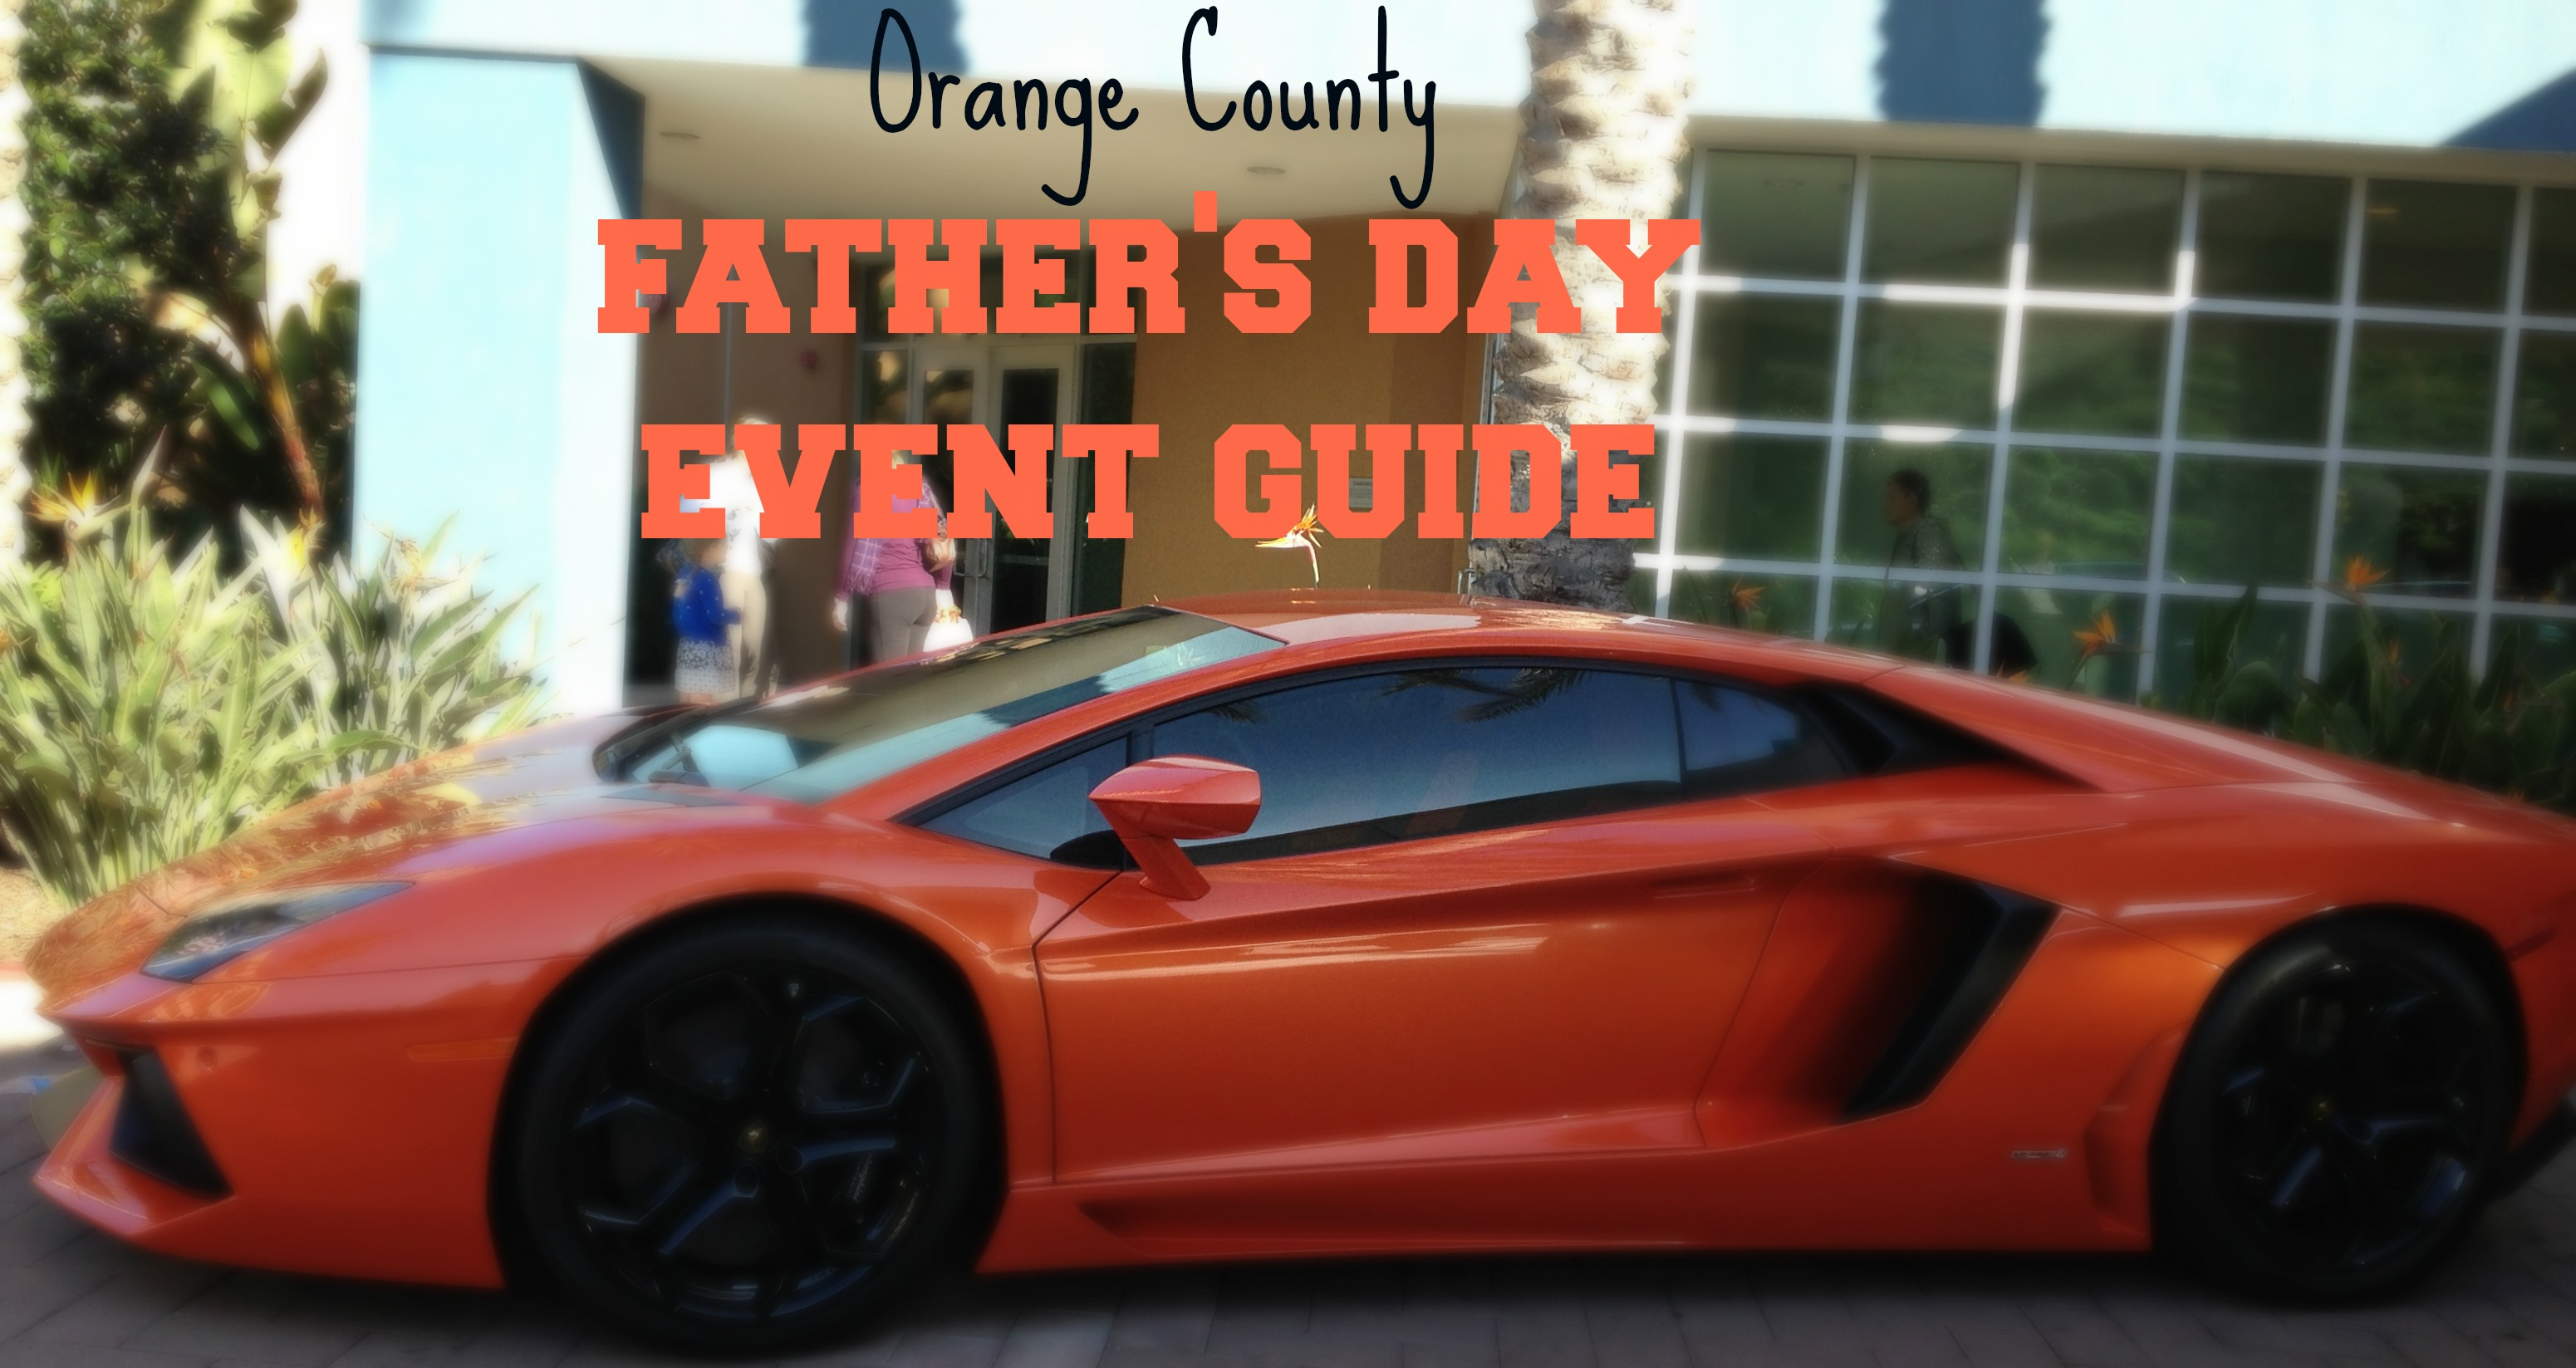 2015 Orange County Father's Day Events